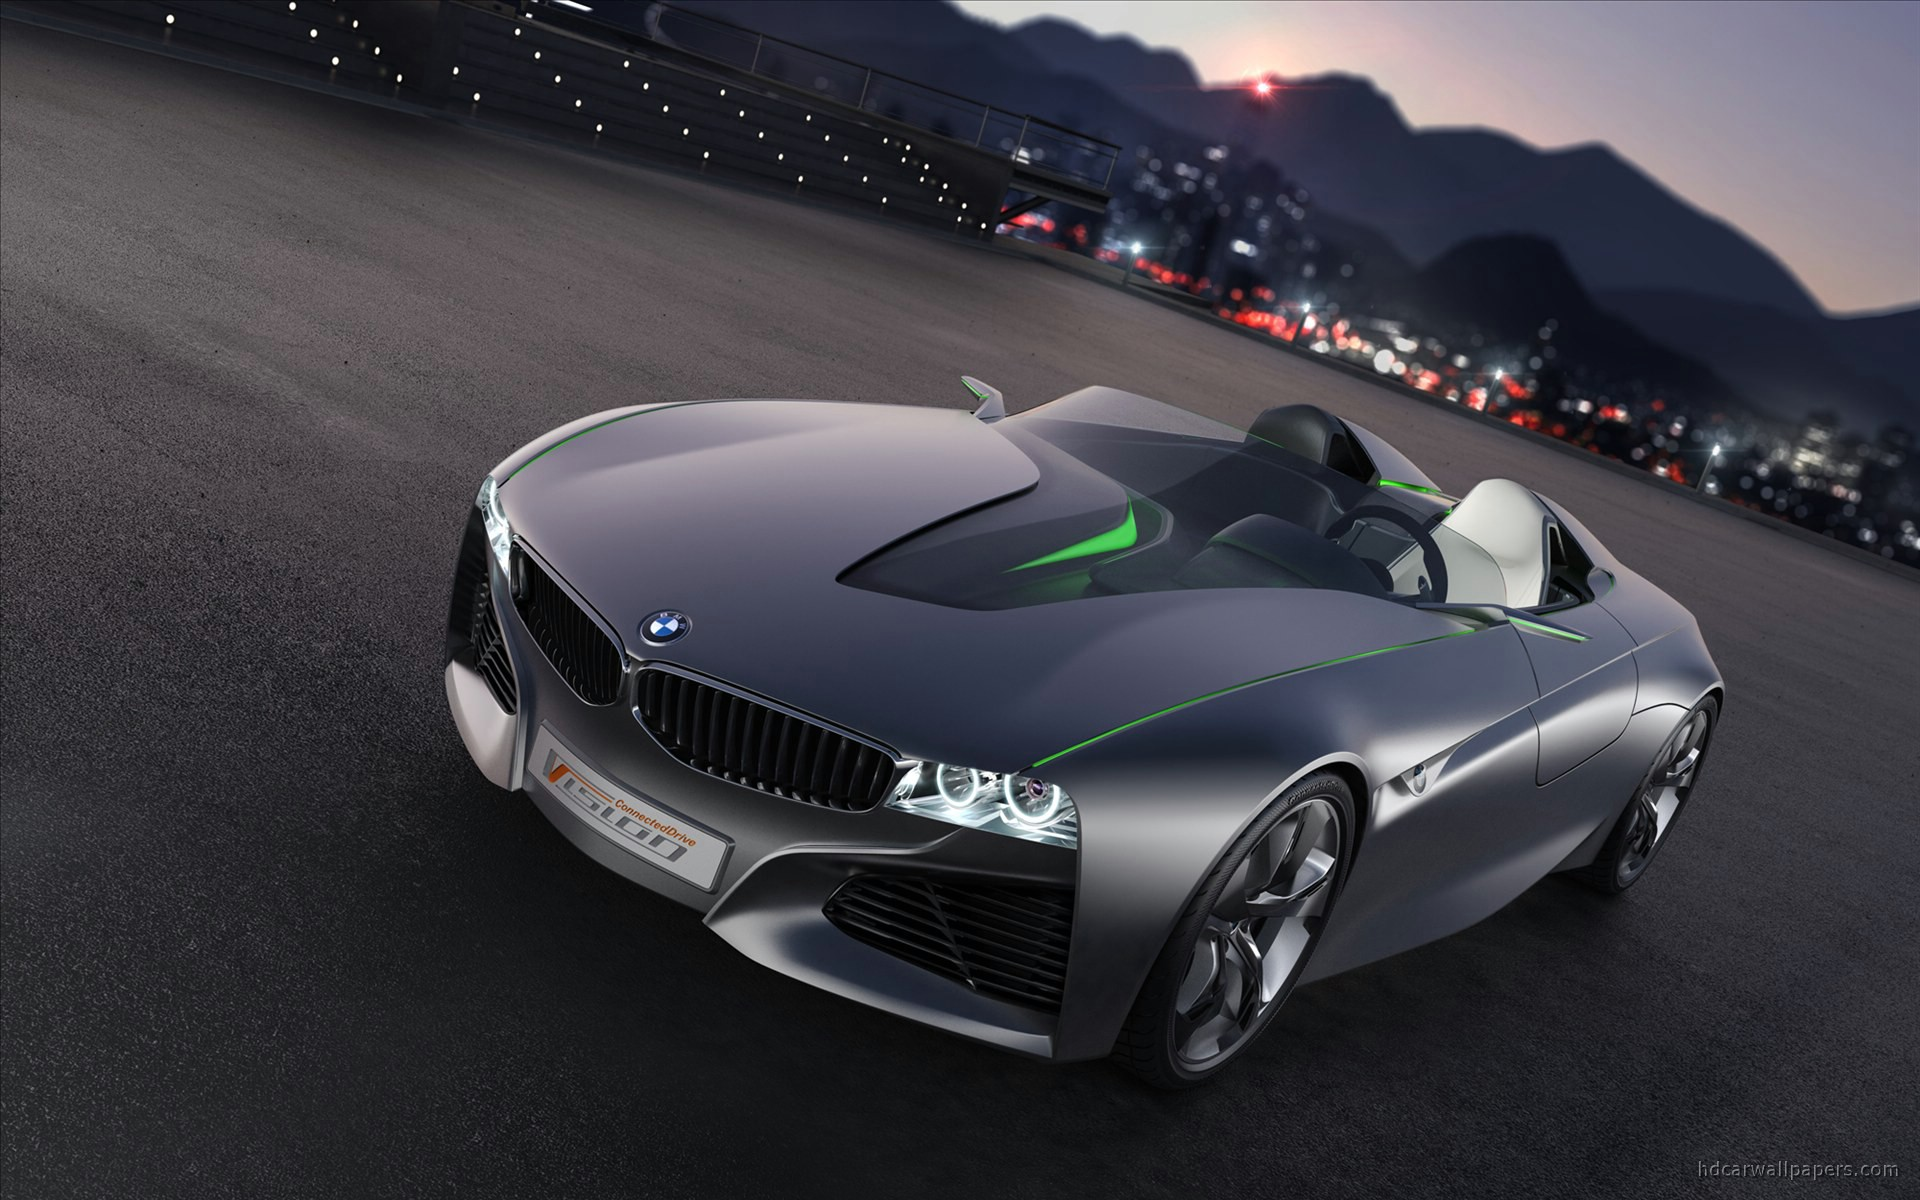 2018 Bmw M5 >> 2011 BMW Vision Connected Drive Concept Wallpaper | HD Car Wallpapers | ID #1907